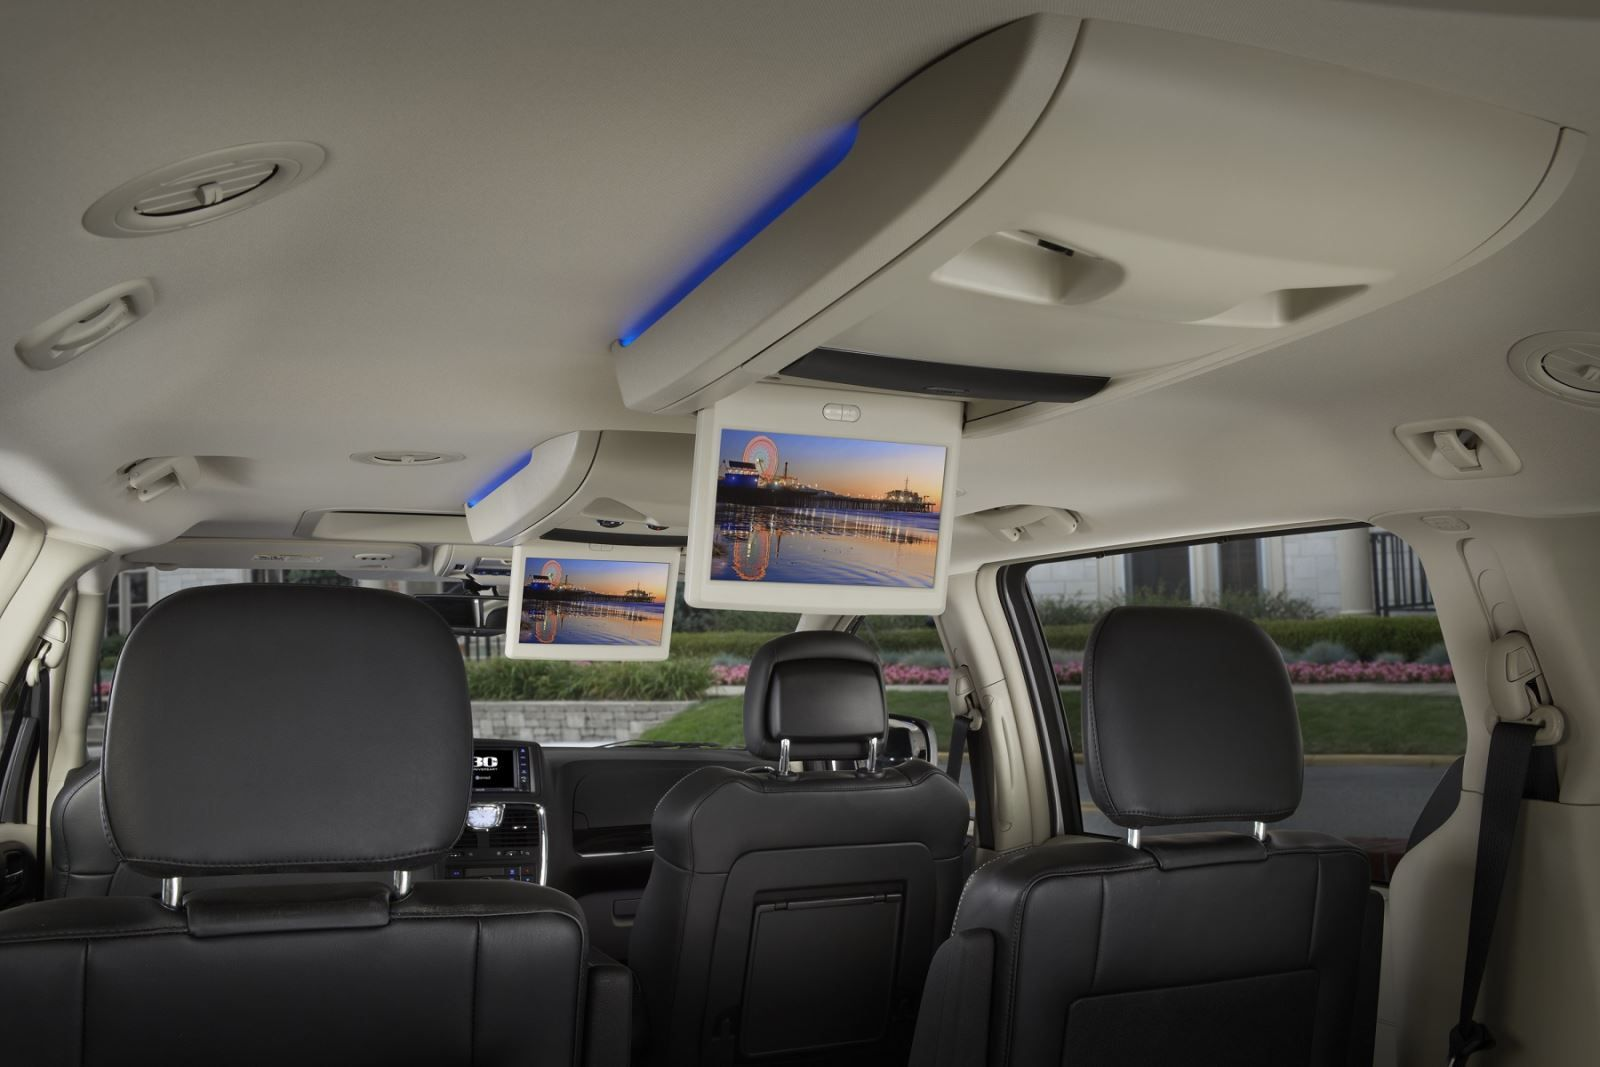 2014 Chrysler Town Country Interior Chrysler Town And Country